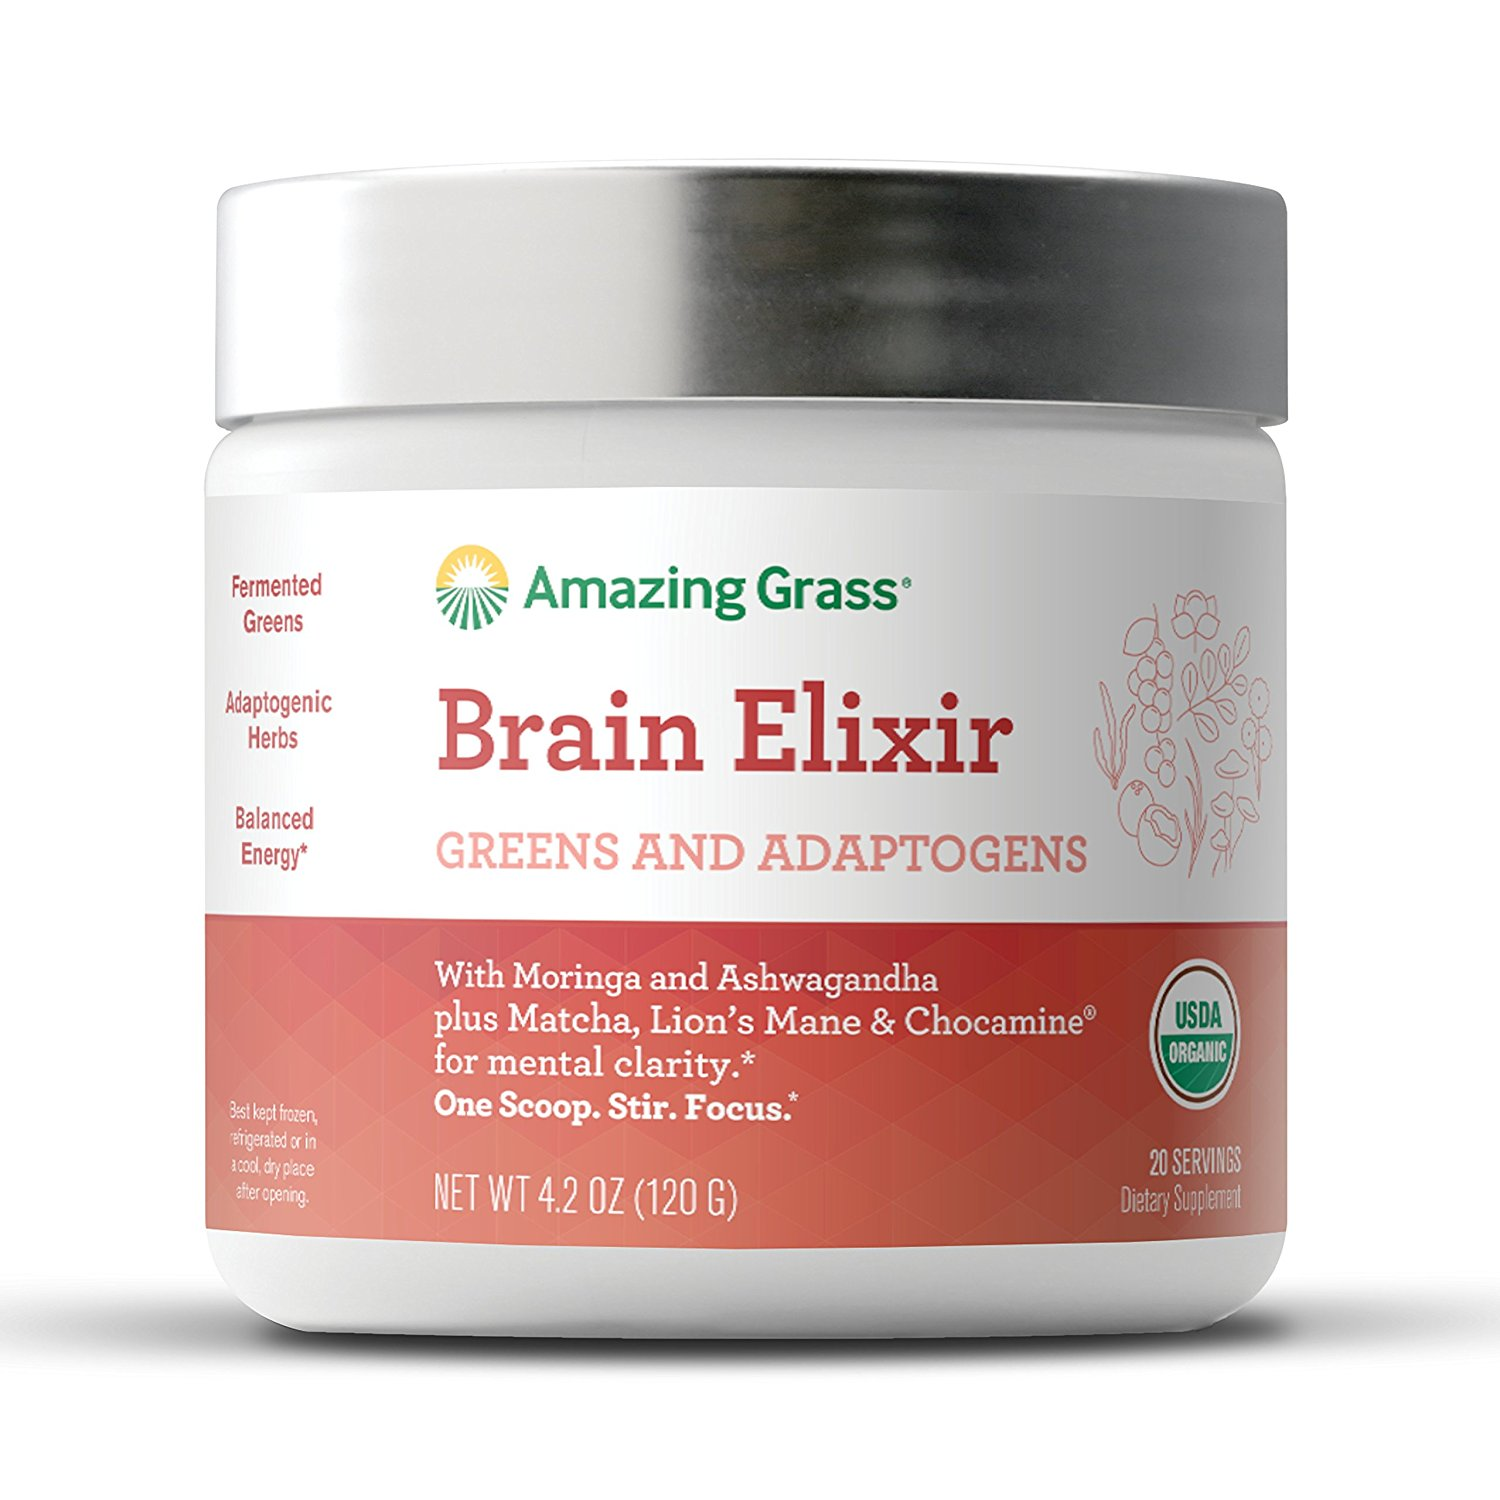 Amazing Grass Brain Elixir Powder with Greens & Adaptogens, 20 Servings